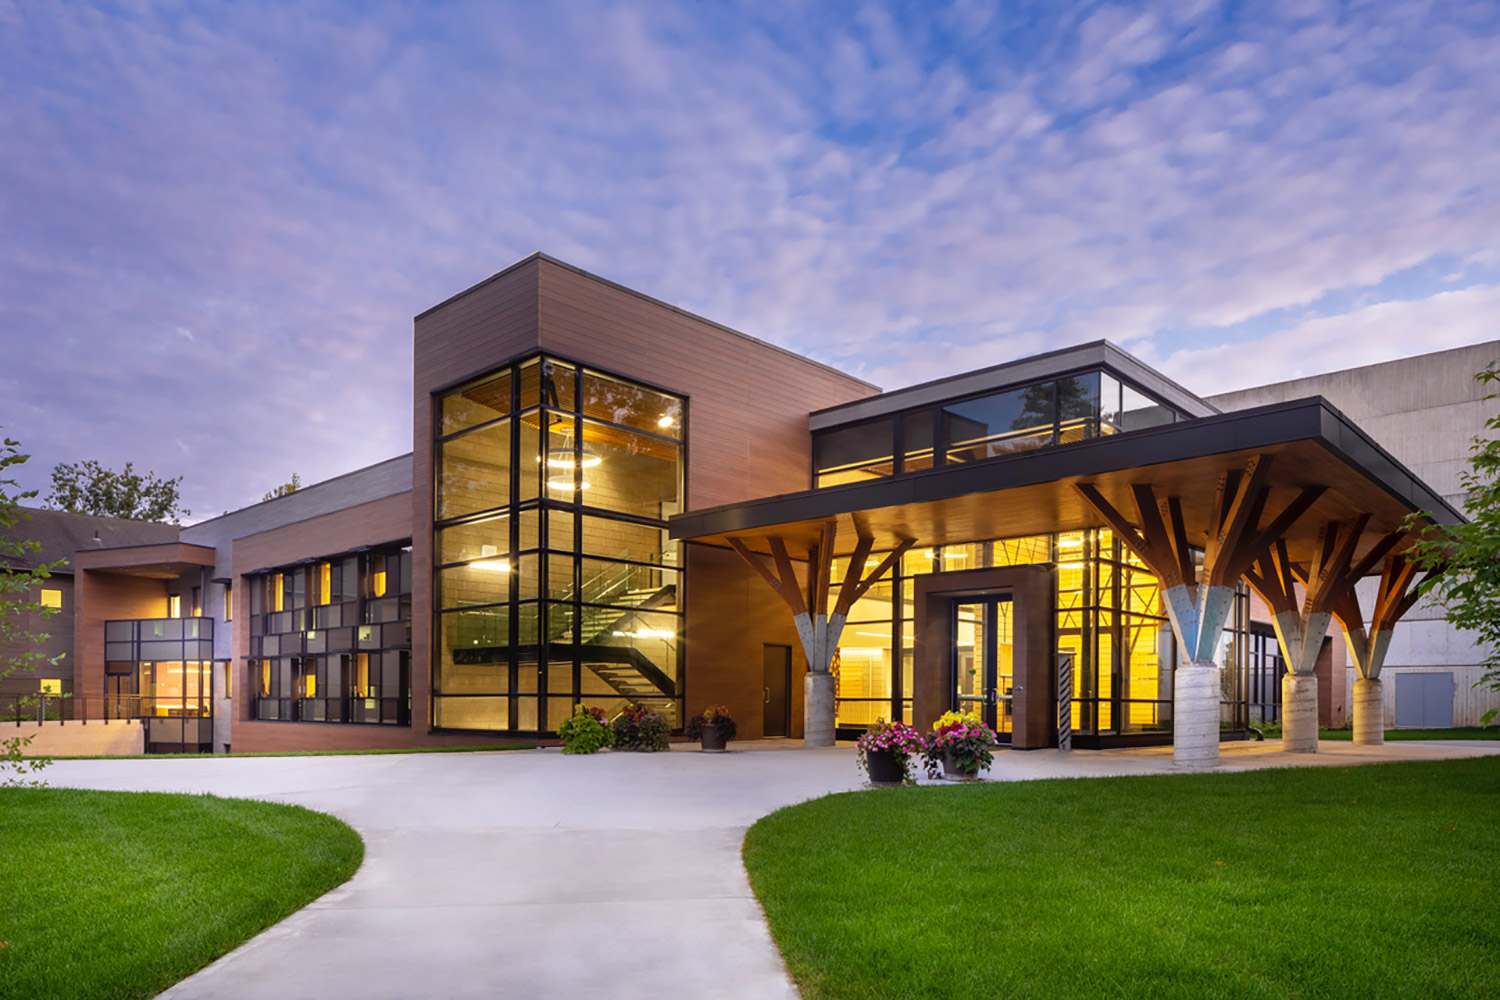 Interlochen has recently completed their new complex. A key component of the new complex is a state-of-the-art recording/teaching studio complex developed by WSDG. Exterior Night Photo.